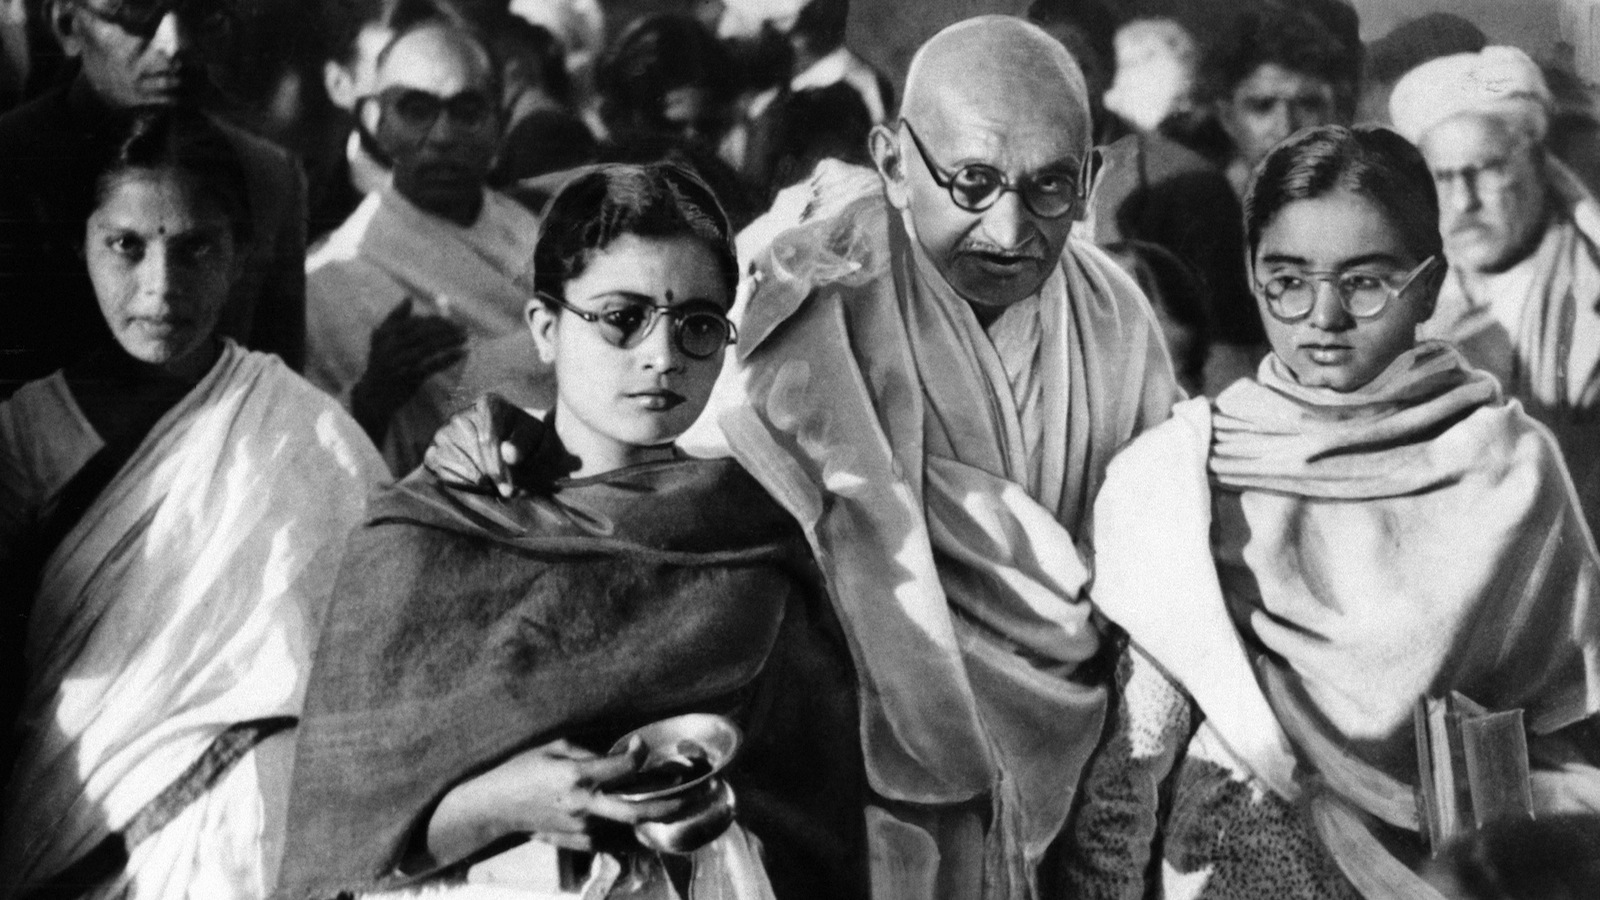 Mahatma Gandhi resting arms on shoulders of two disciples, one of whom carries brass bowl of holy water, glances sharply at cameraman January 1948. Gandhi dislikes being photographed and declines permit use of flash bulbs which hurt his eyes. (AP Photo)